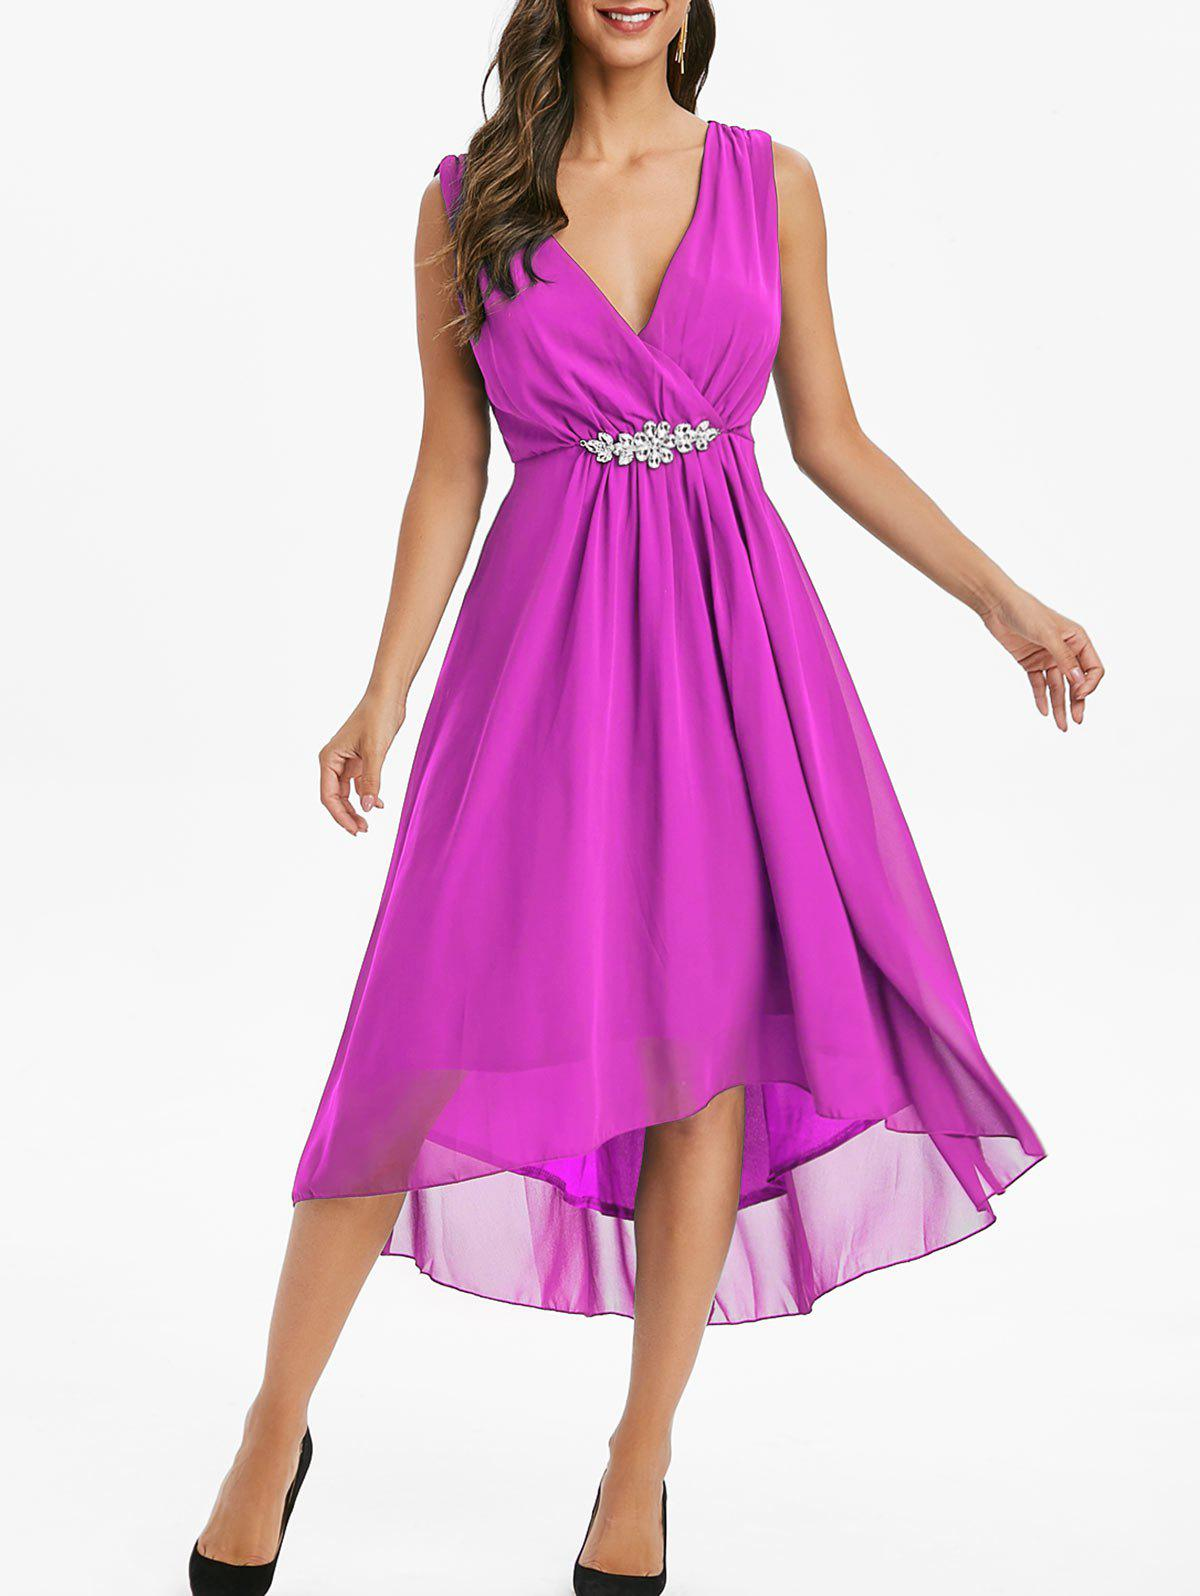 Chiffon Rhinestone High Low Surplice Dress - MEDIUM ORCHID S